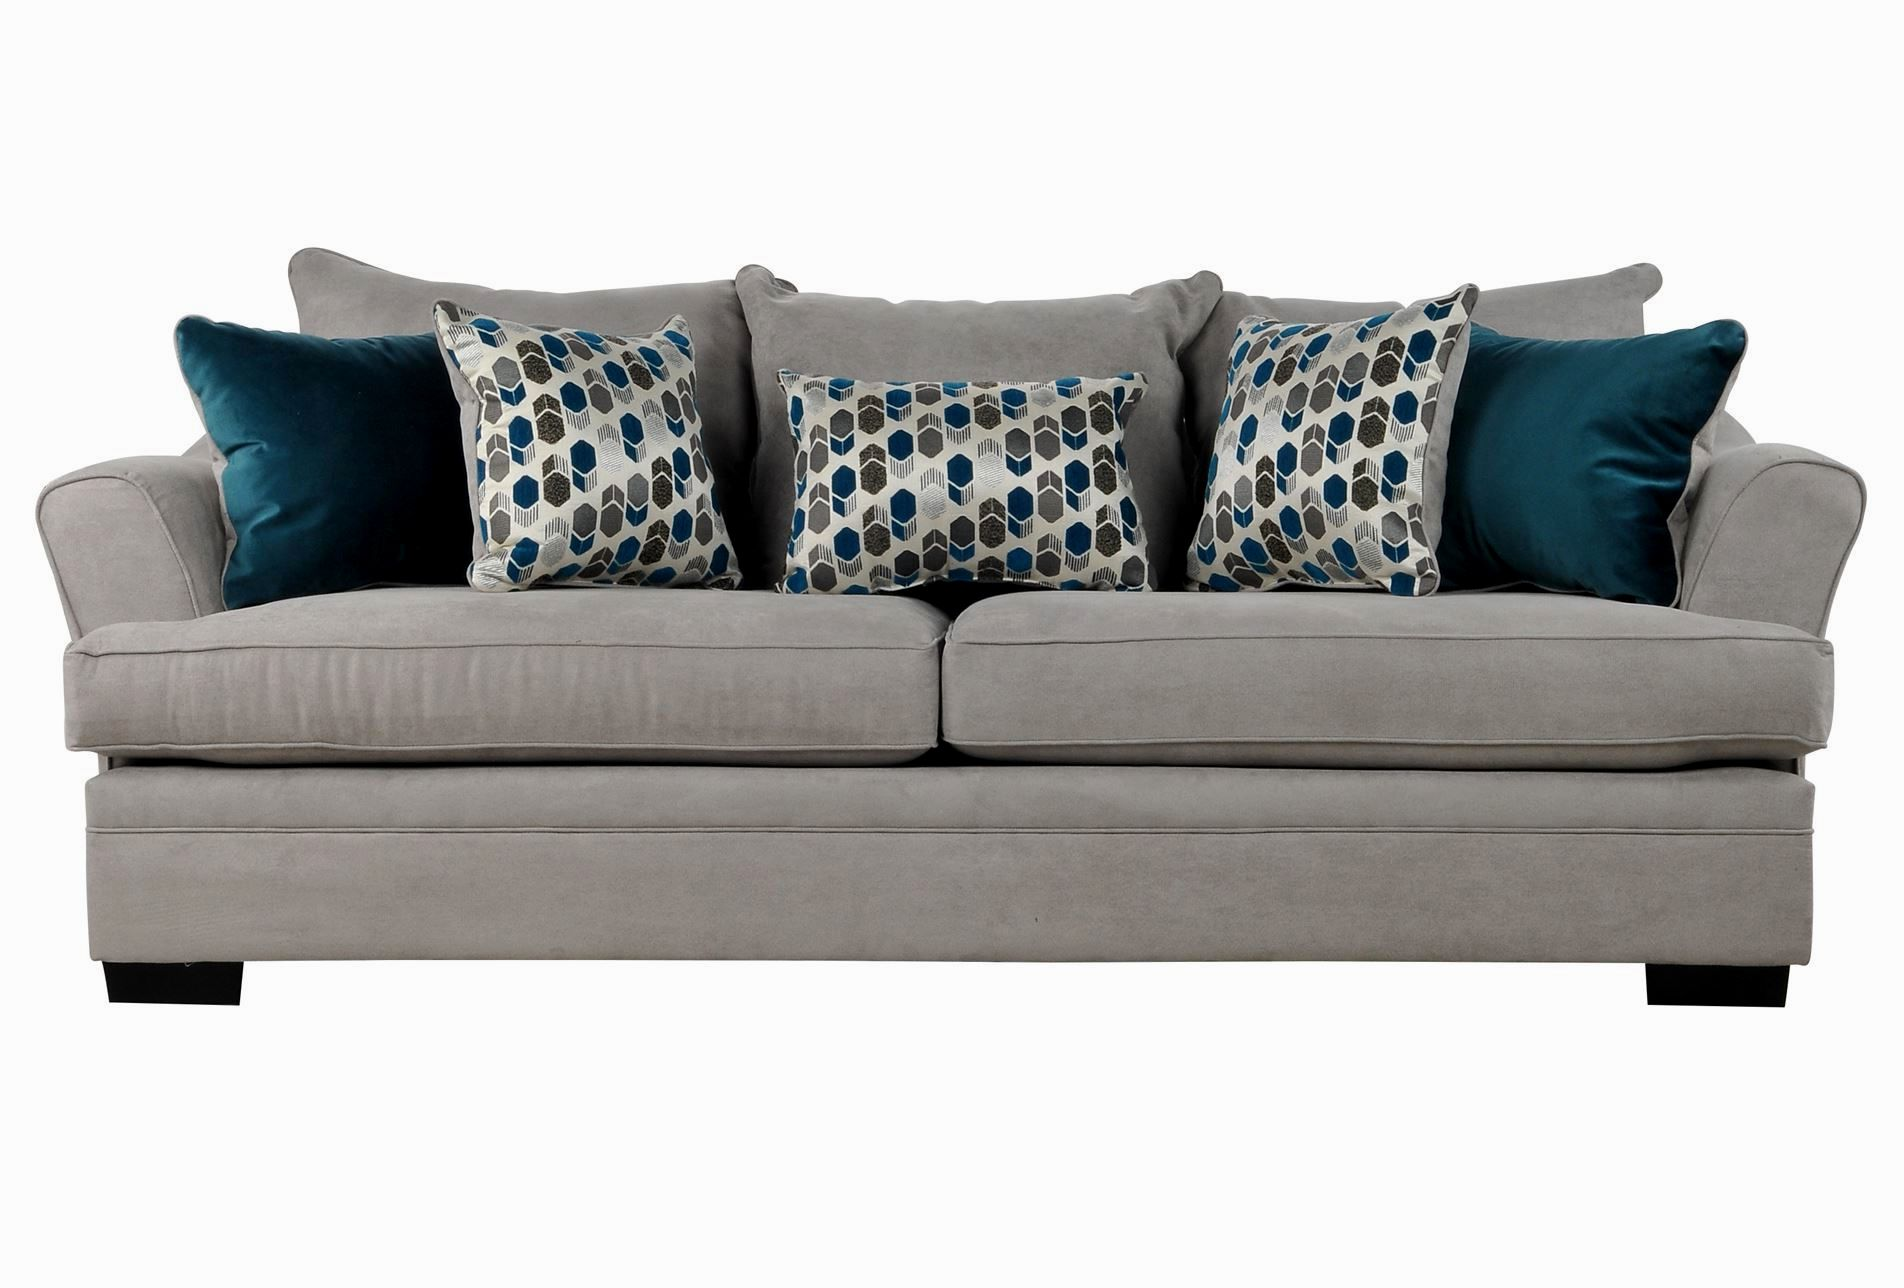 elegant target sleeper sofa layout-Inspirational Target Sleeper sofa Decoration